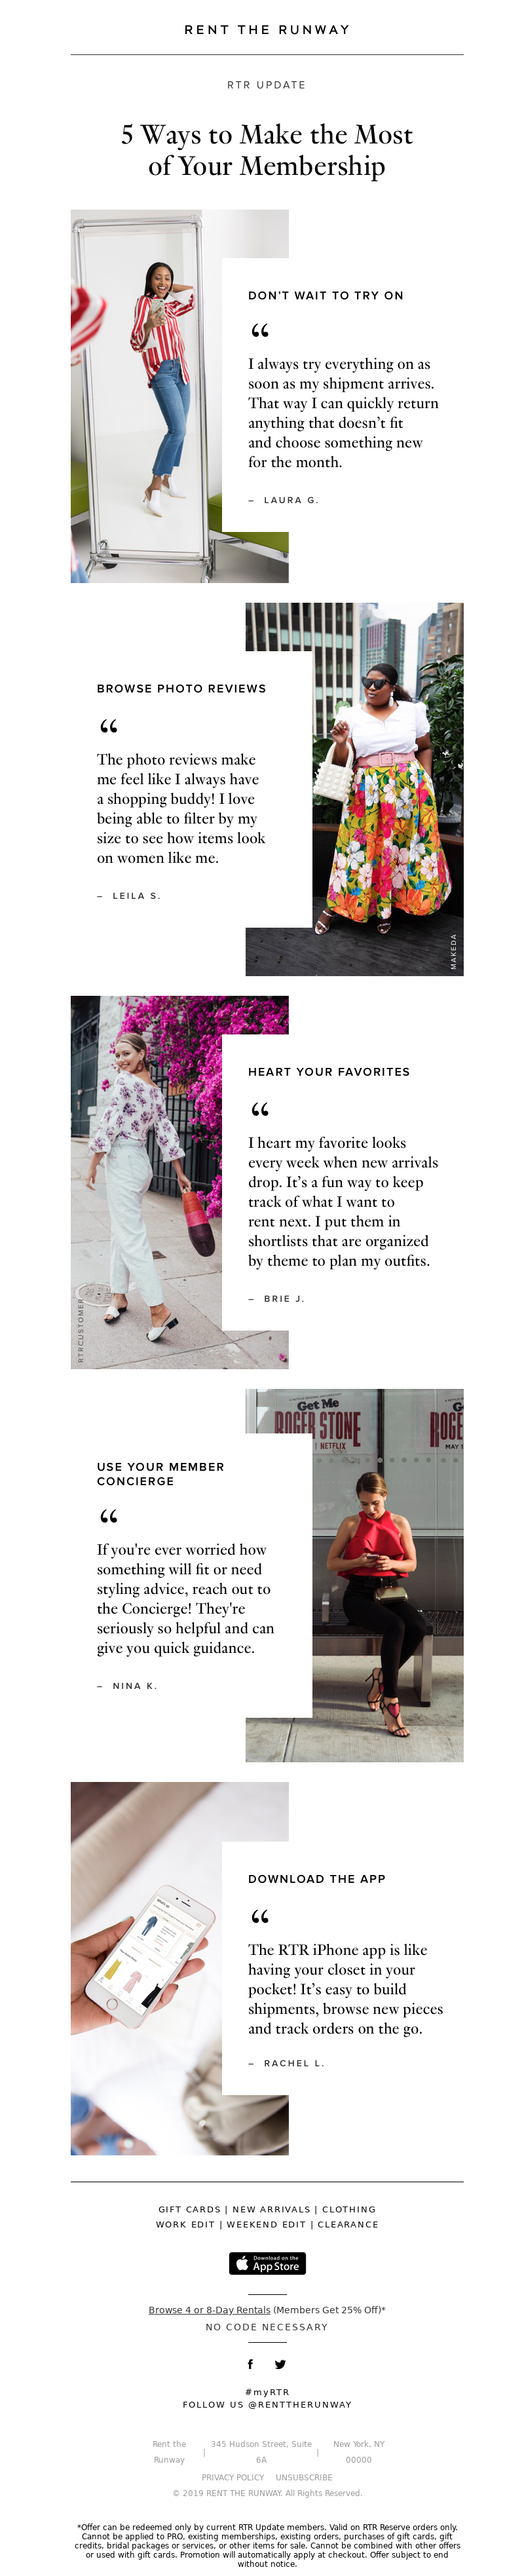 Onboarding email from Rent the Runway